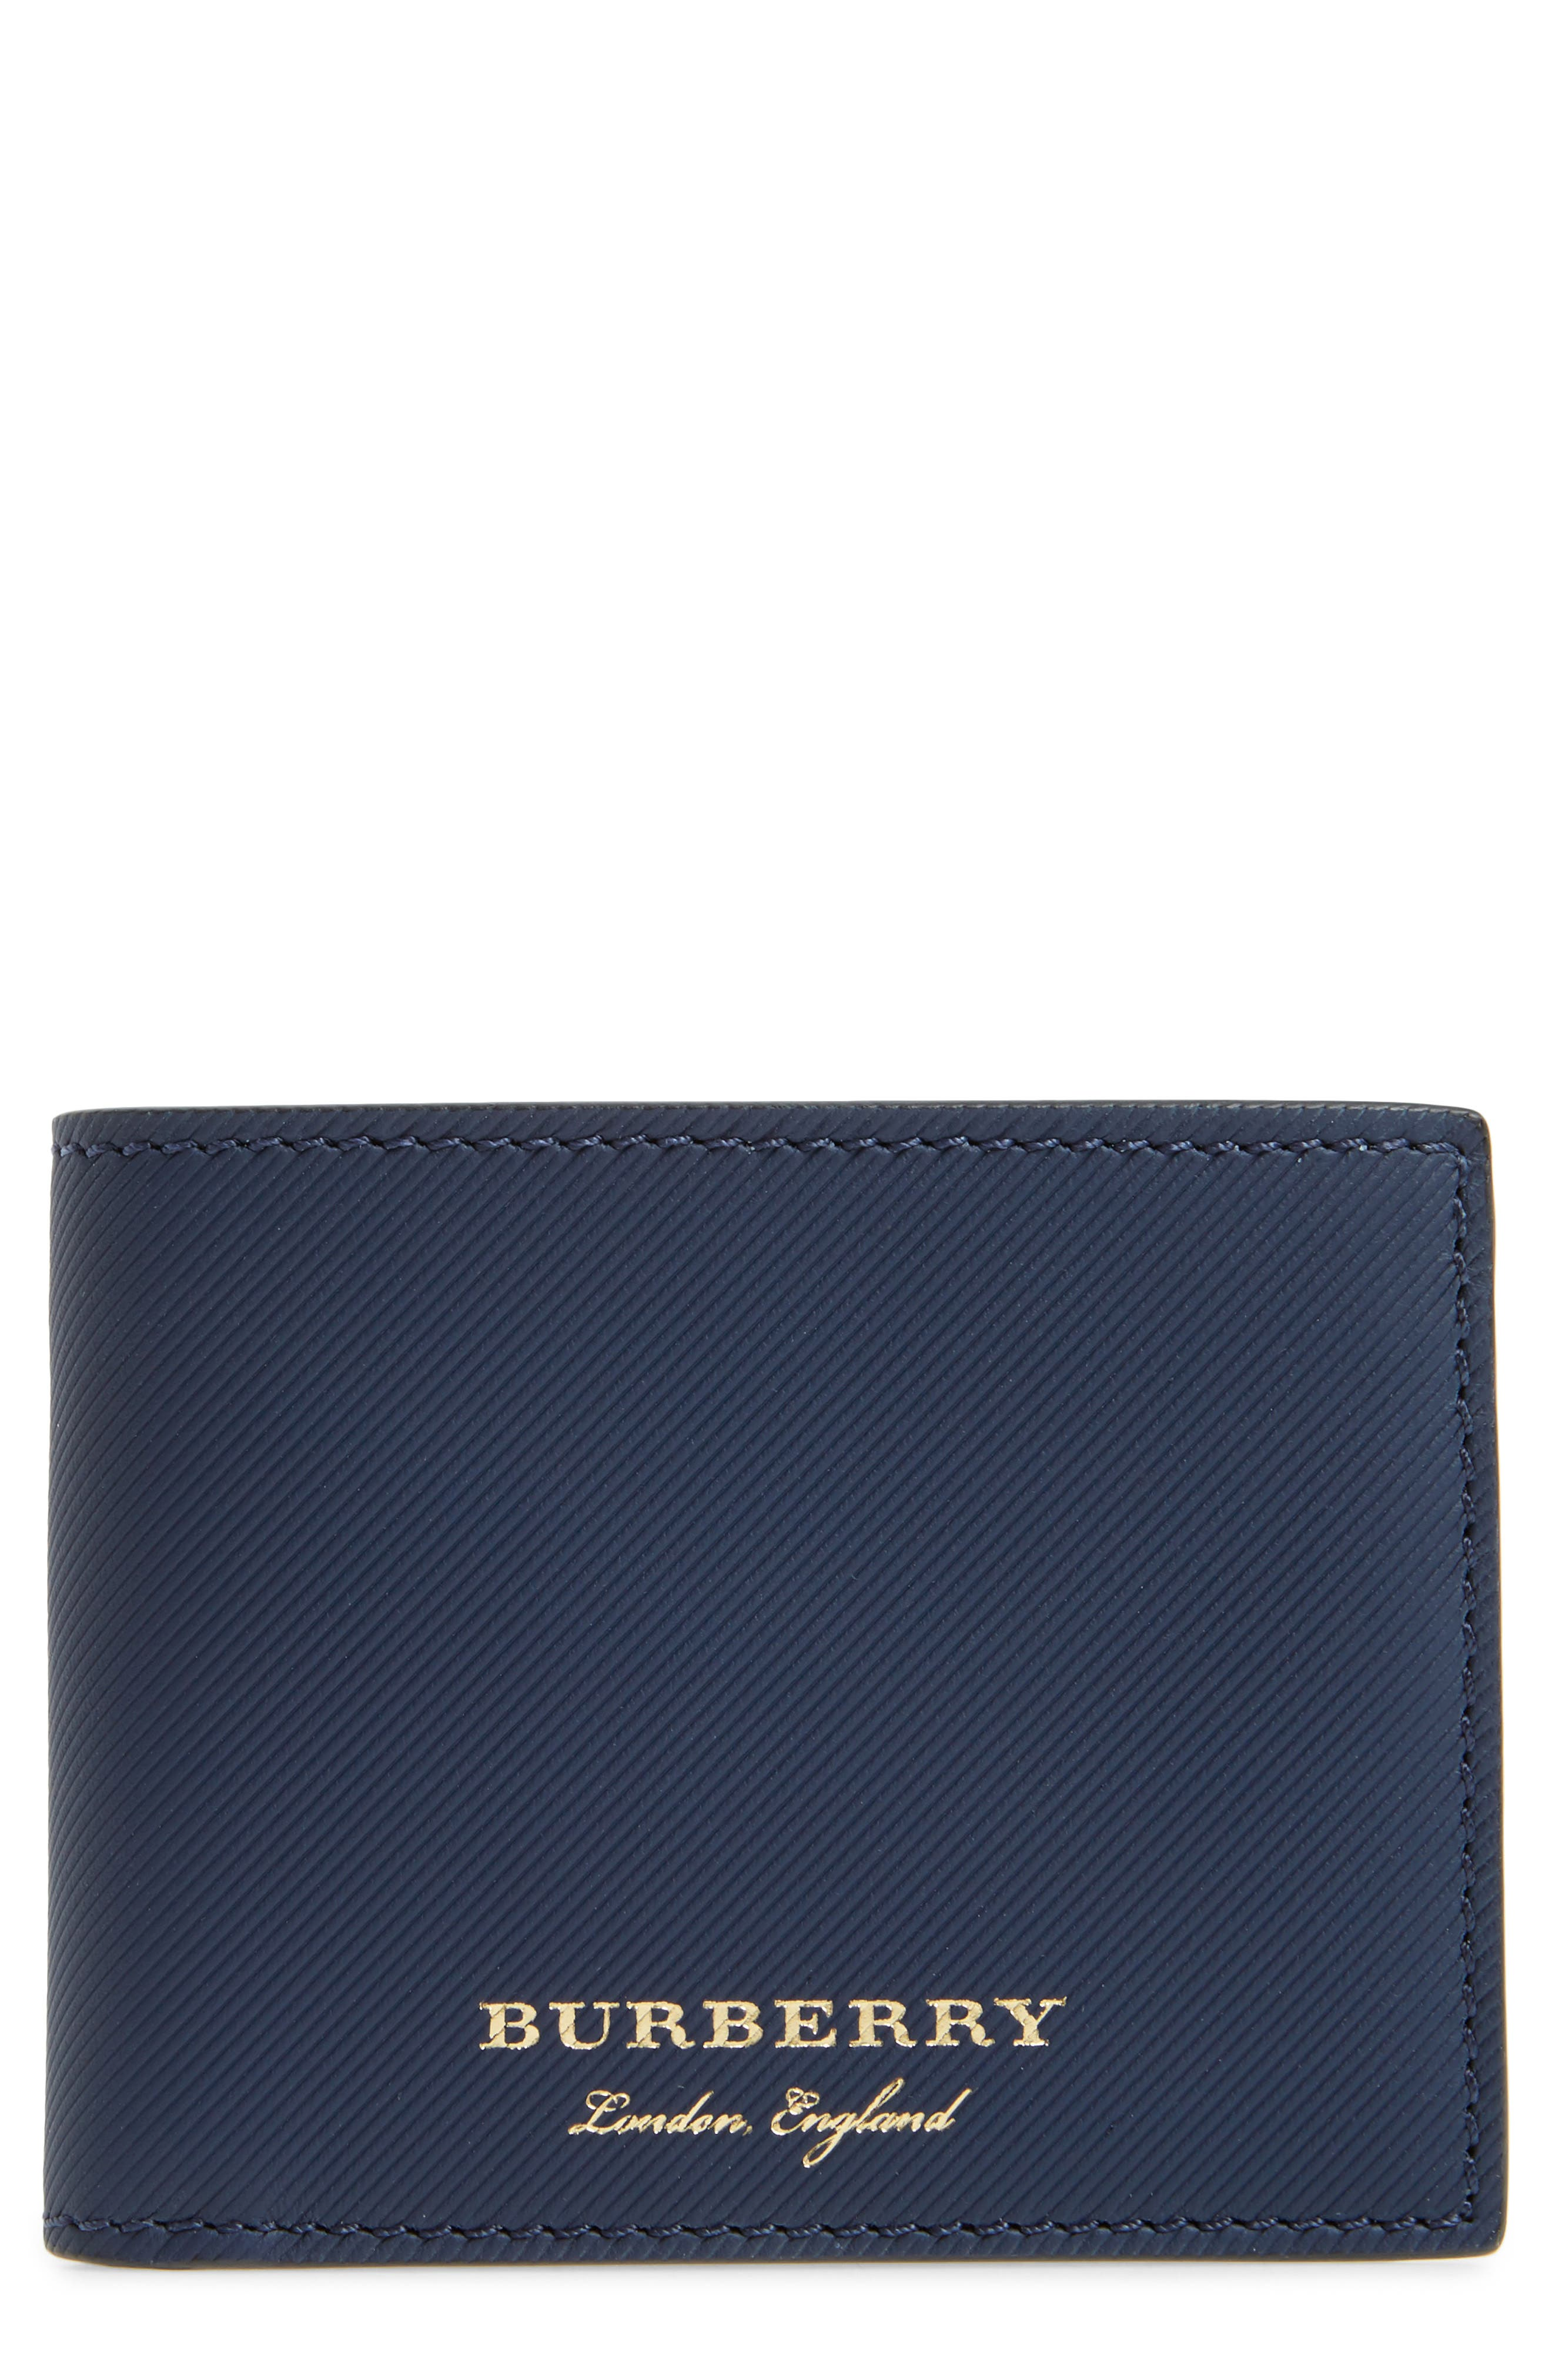 Trench Leather Wallet,                         Main,                         color, Ink Blue